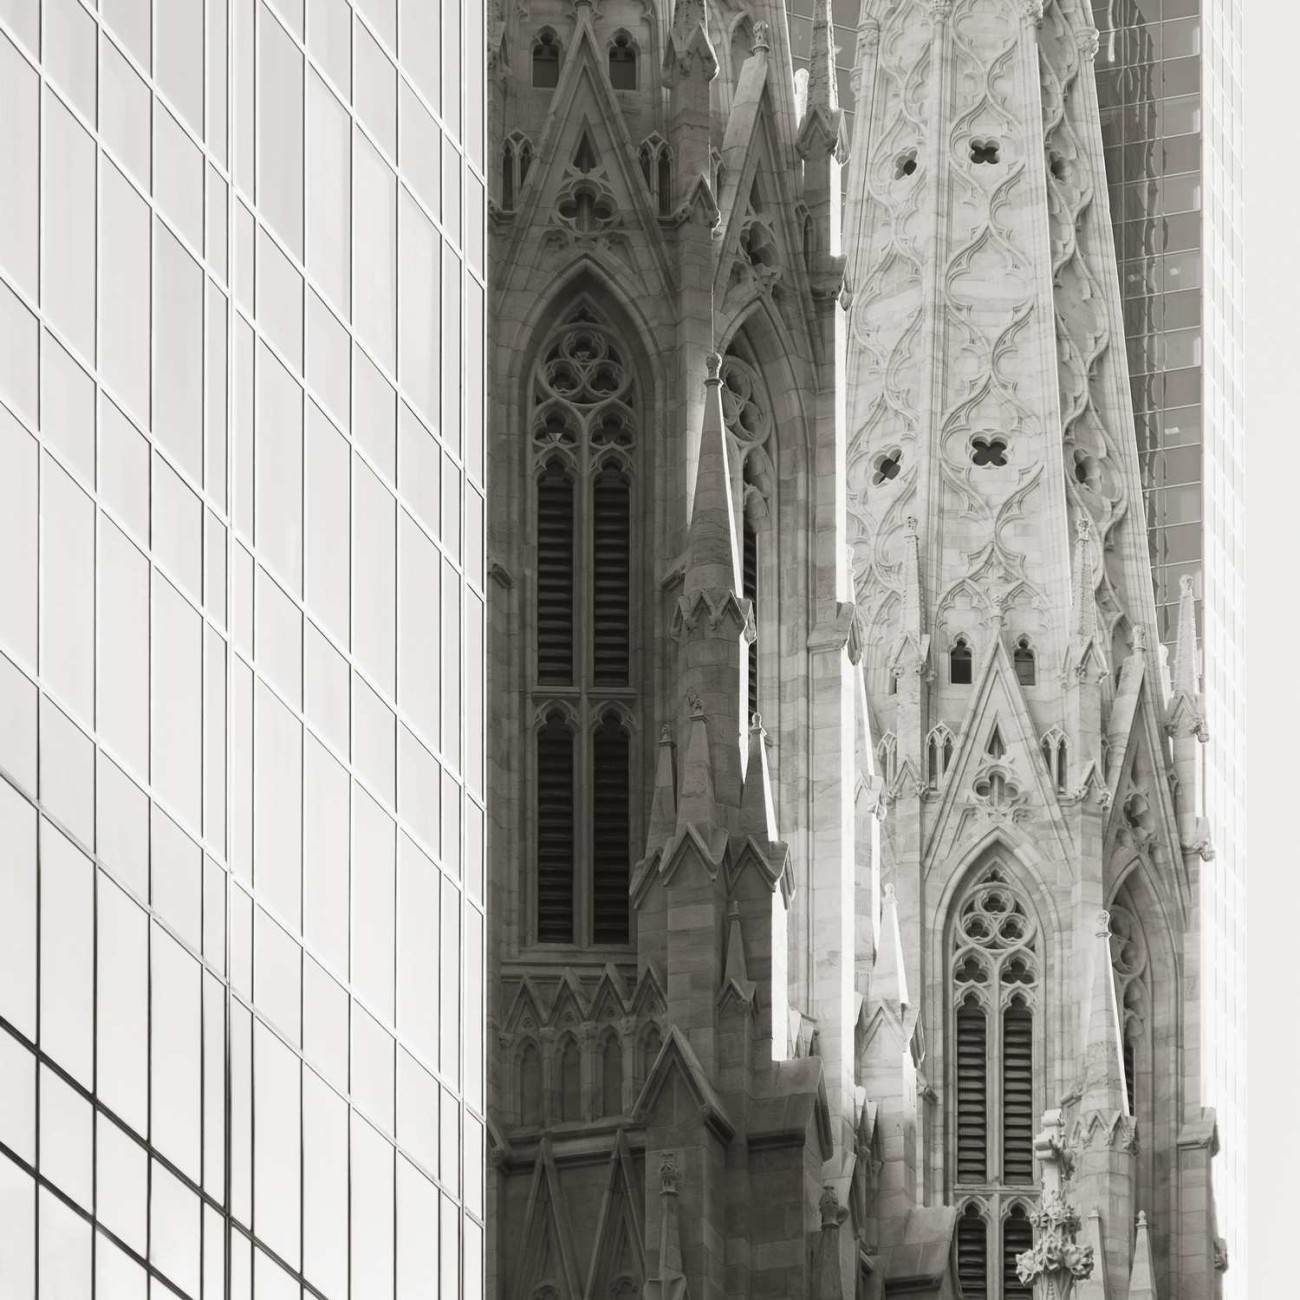 Steeples of St. Patricks and office buildings, study 2, New York